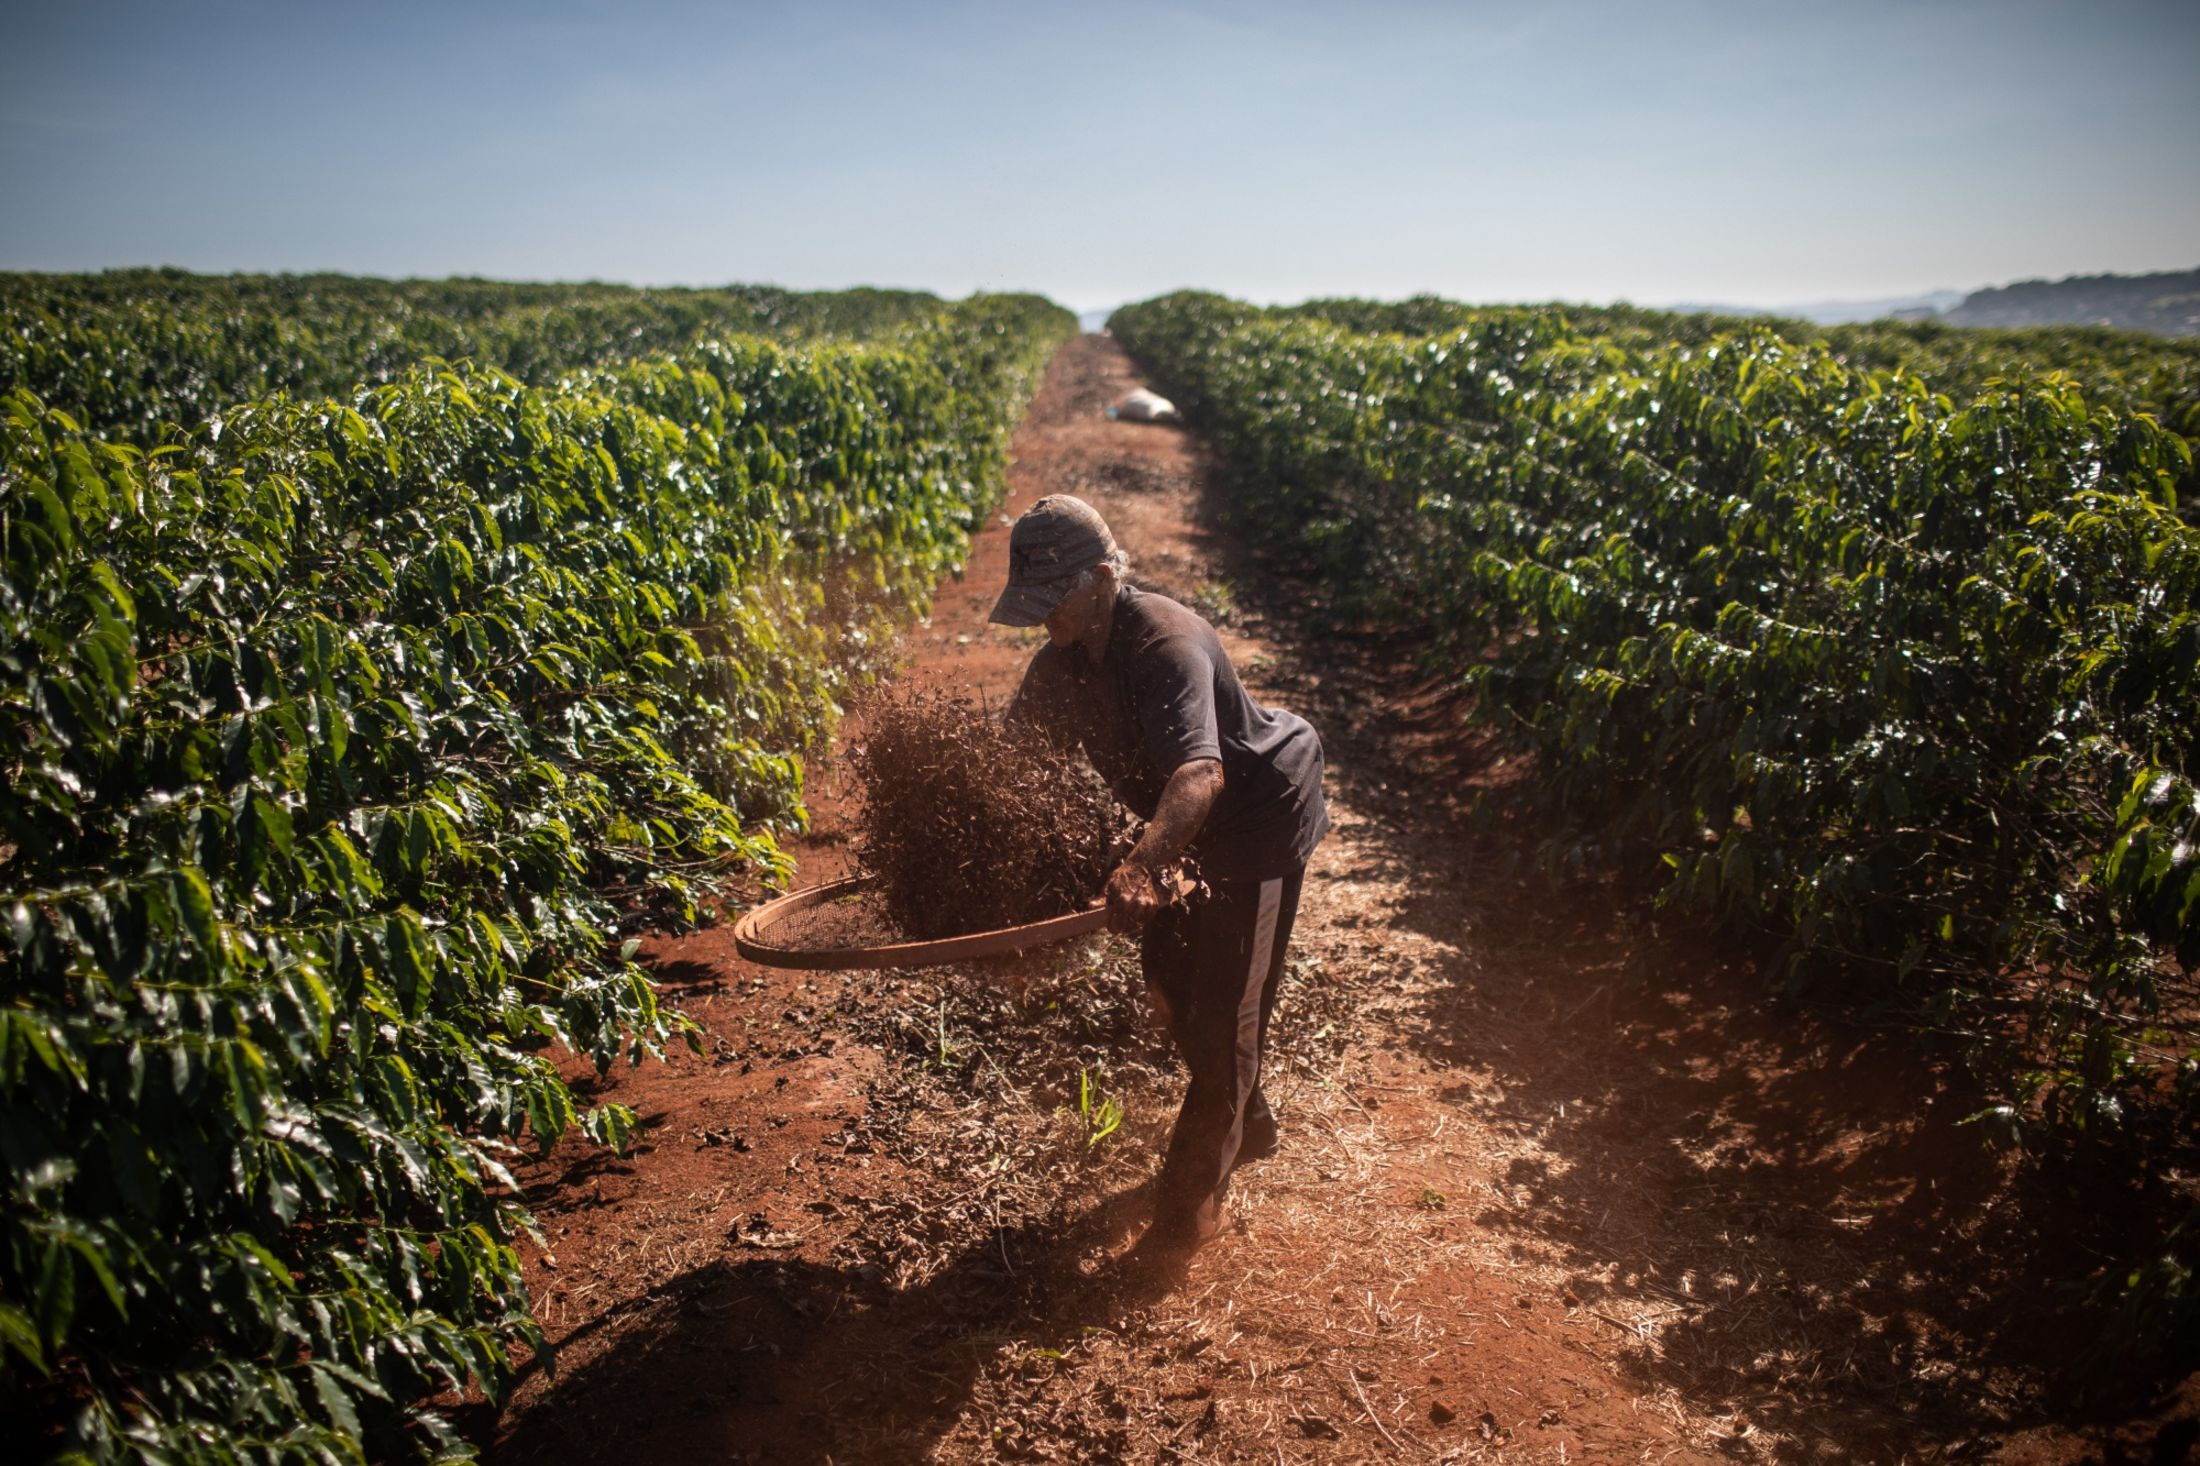 A worker harvests coffee on a farm in Alfenas, Minas Gerais state, Brazil, on Tuesday, May 28, 2019.